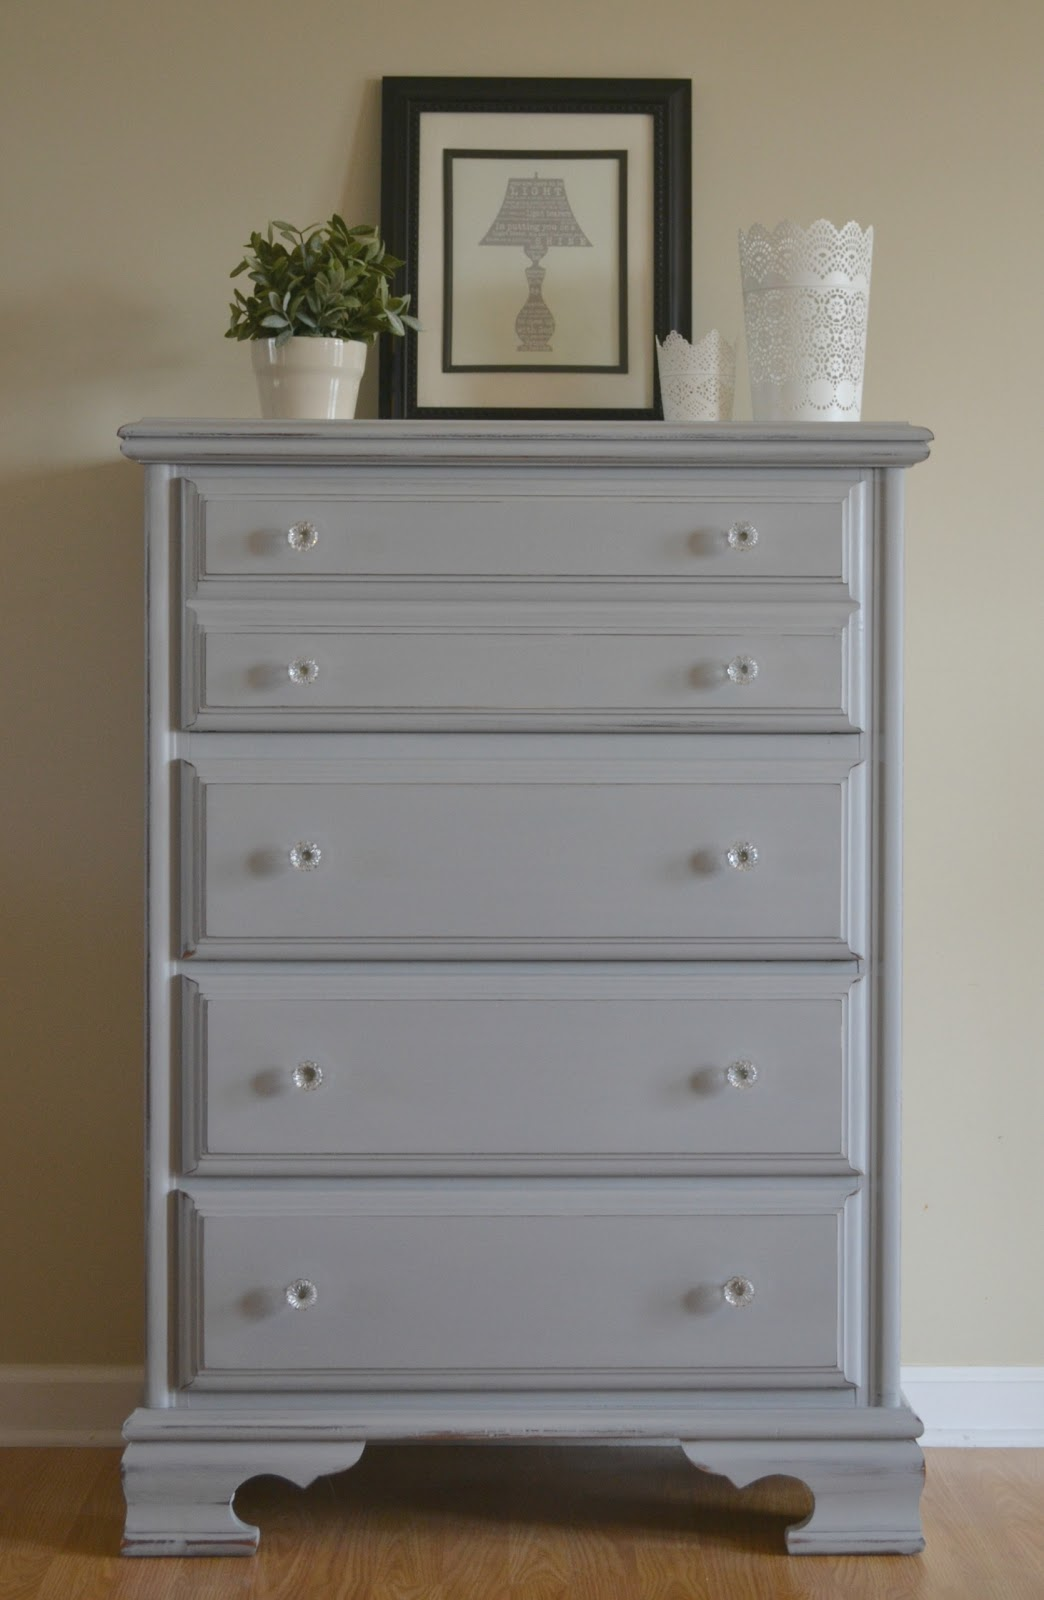 Funky Junk: Paris Gray Chest of Drawers